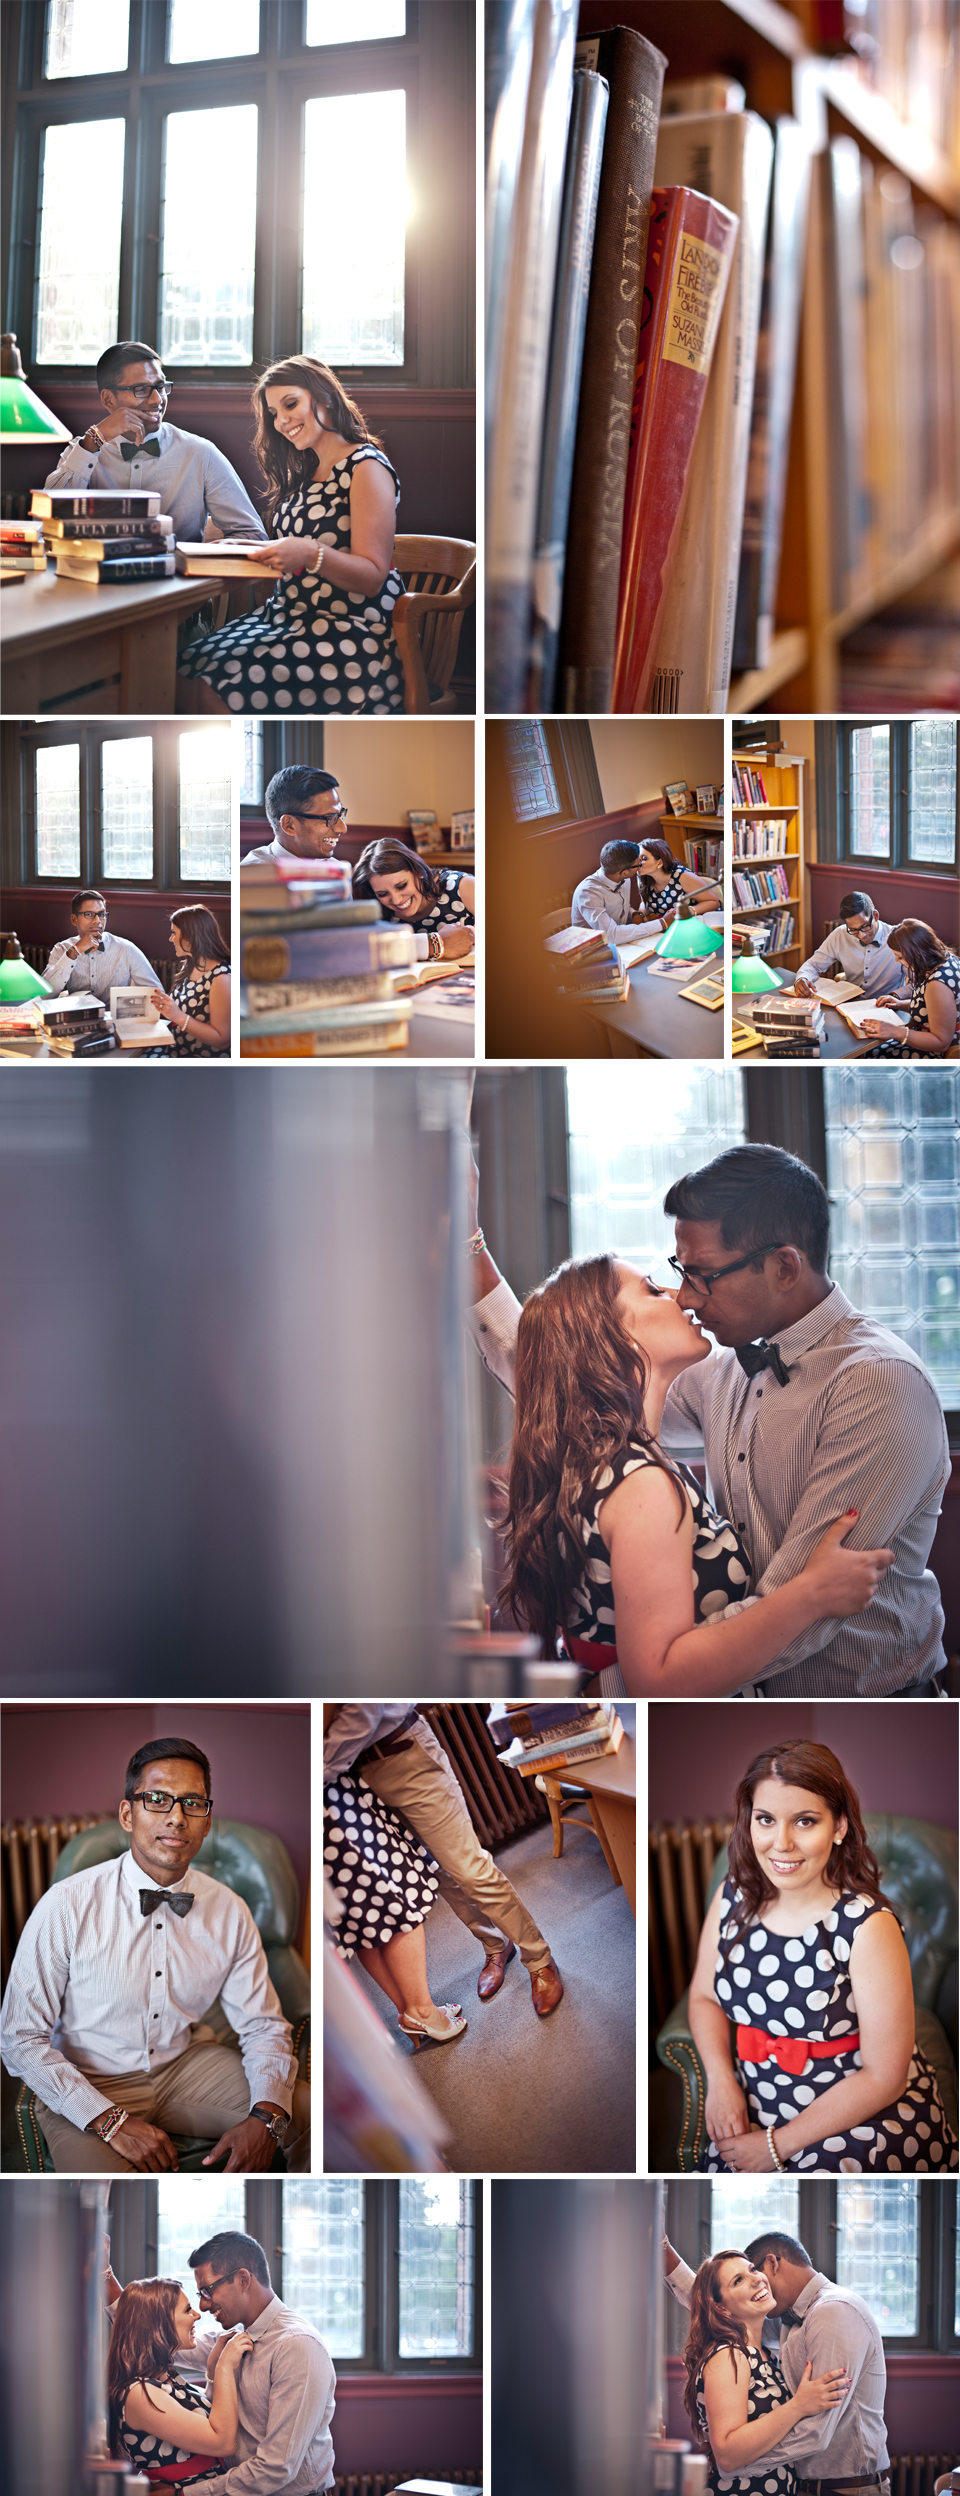 Wedding Photographer Montreal   Westmount Library Engagement Photos   Lindsay Muciy Photography and Videography